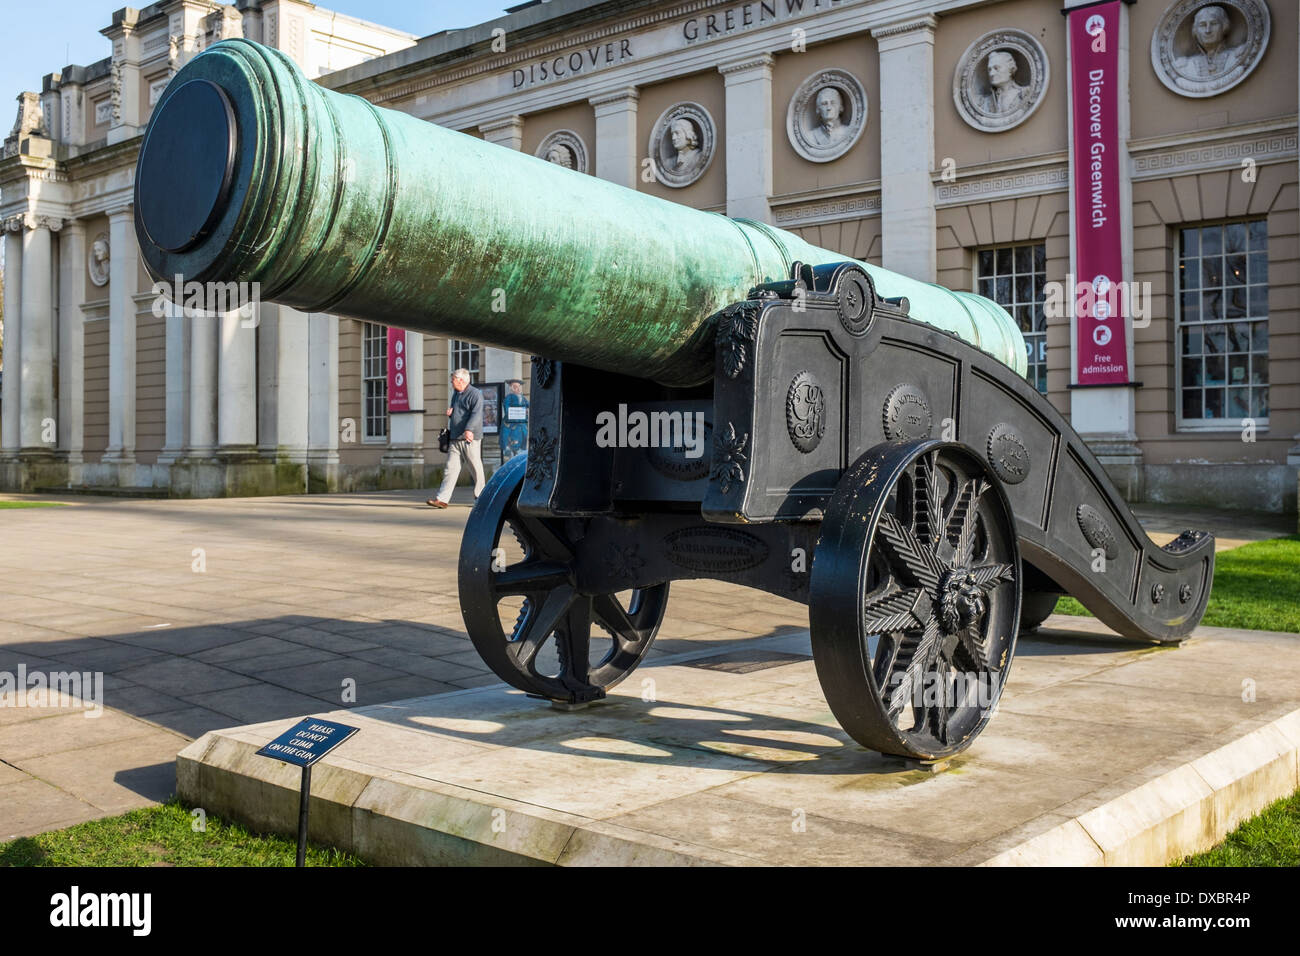 Old historic cannon outside Discover Greenwich Visitor Centre - London SE10 - Stock Image